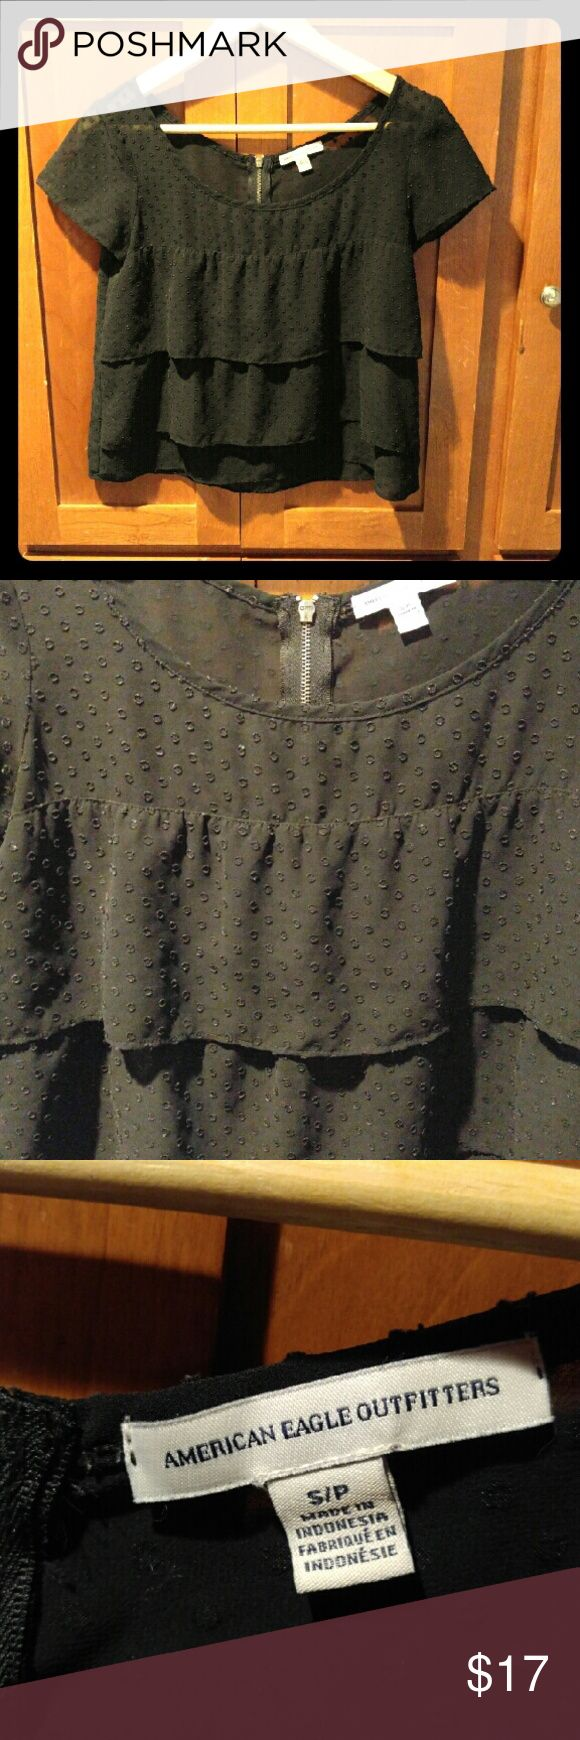 American Eagle Outfitters Top Sz. SP Super cute pointelle layered AE Outfitters Top in black. Sz. SP American Eagle Outfitters Tops Blouses